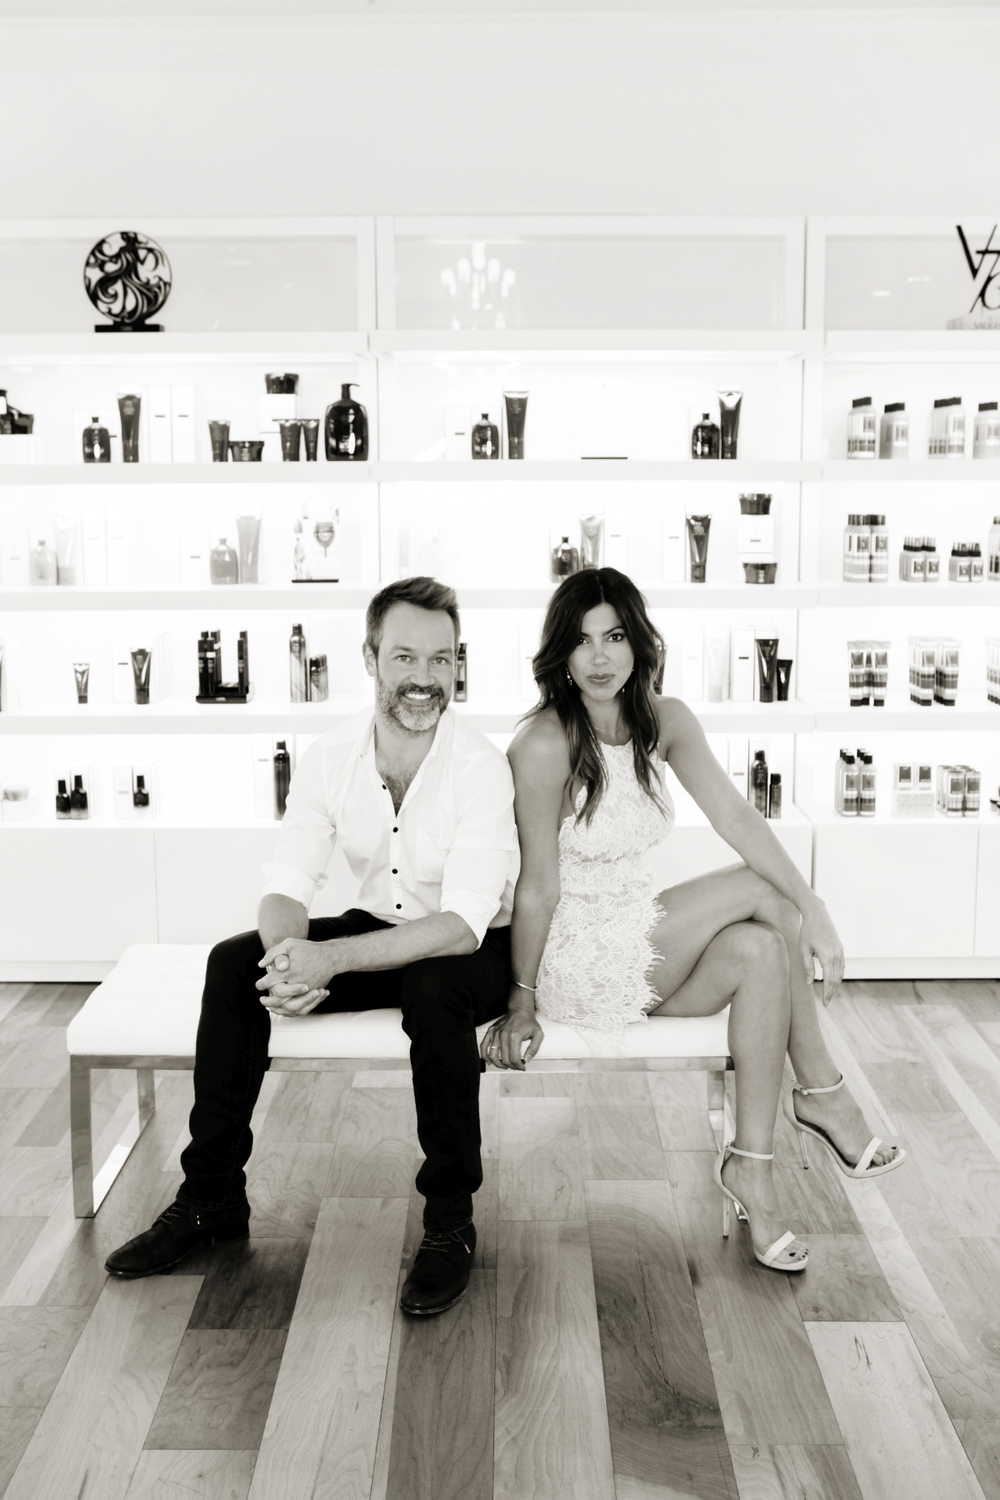 <p>Bobby Cooper and Sarah Cooper, owners of Bobby Cooper Salon, Inc., in Indianapolis, IN.</p>